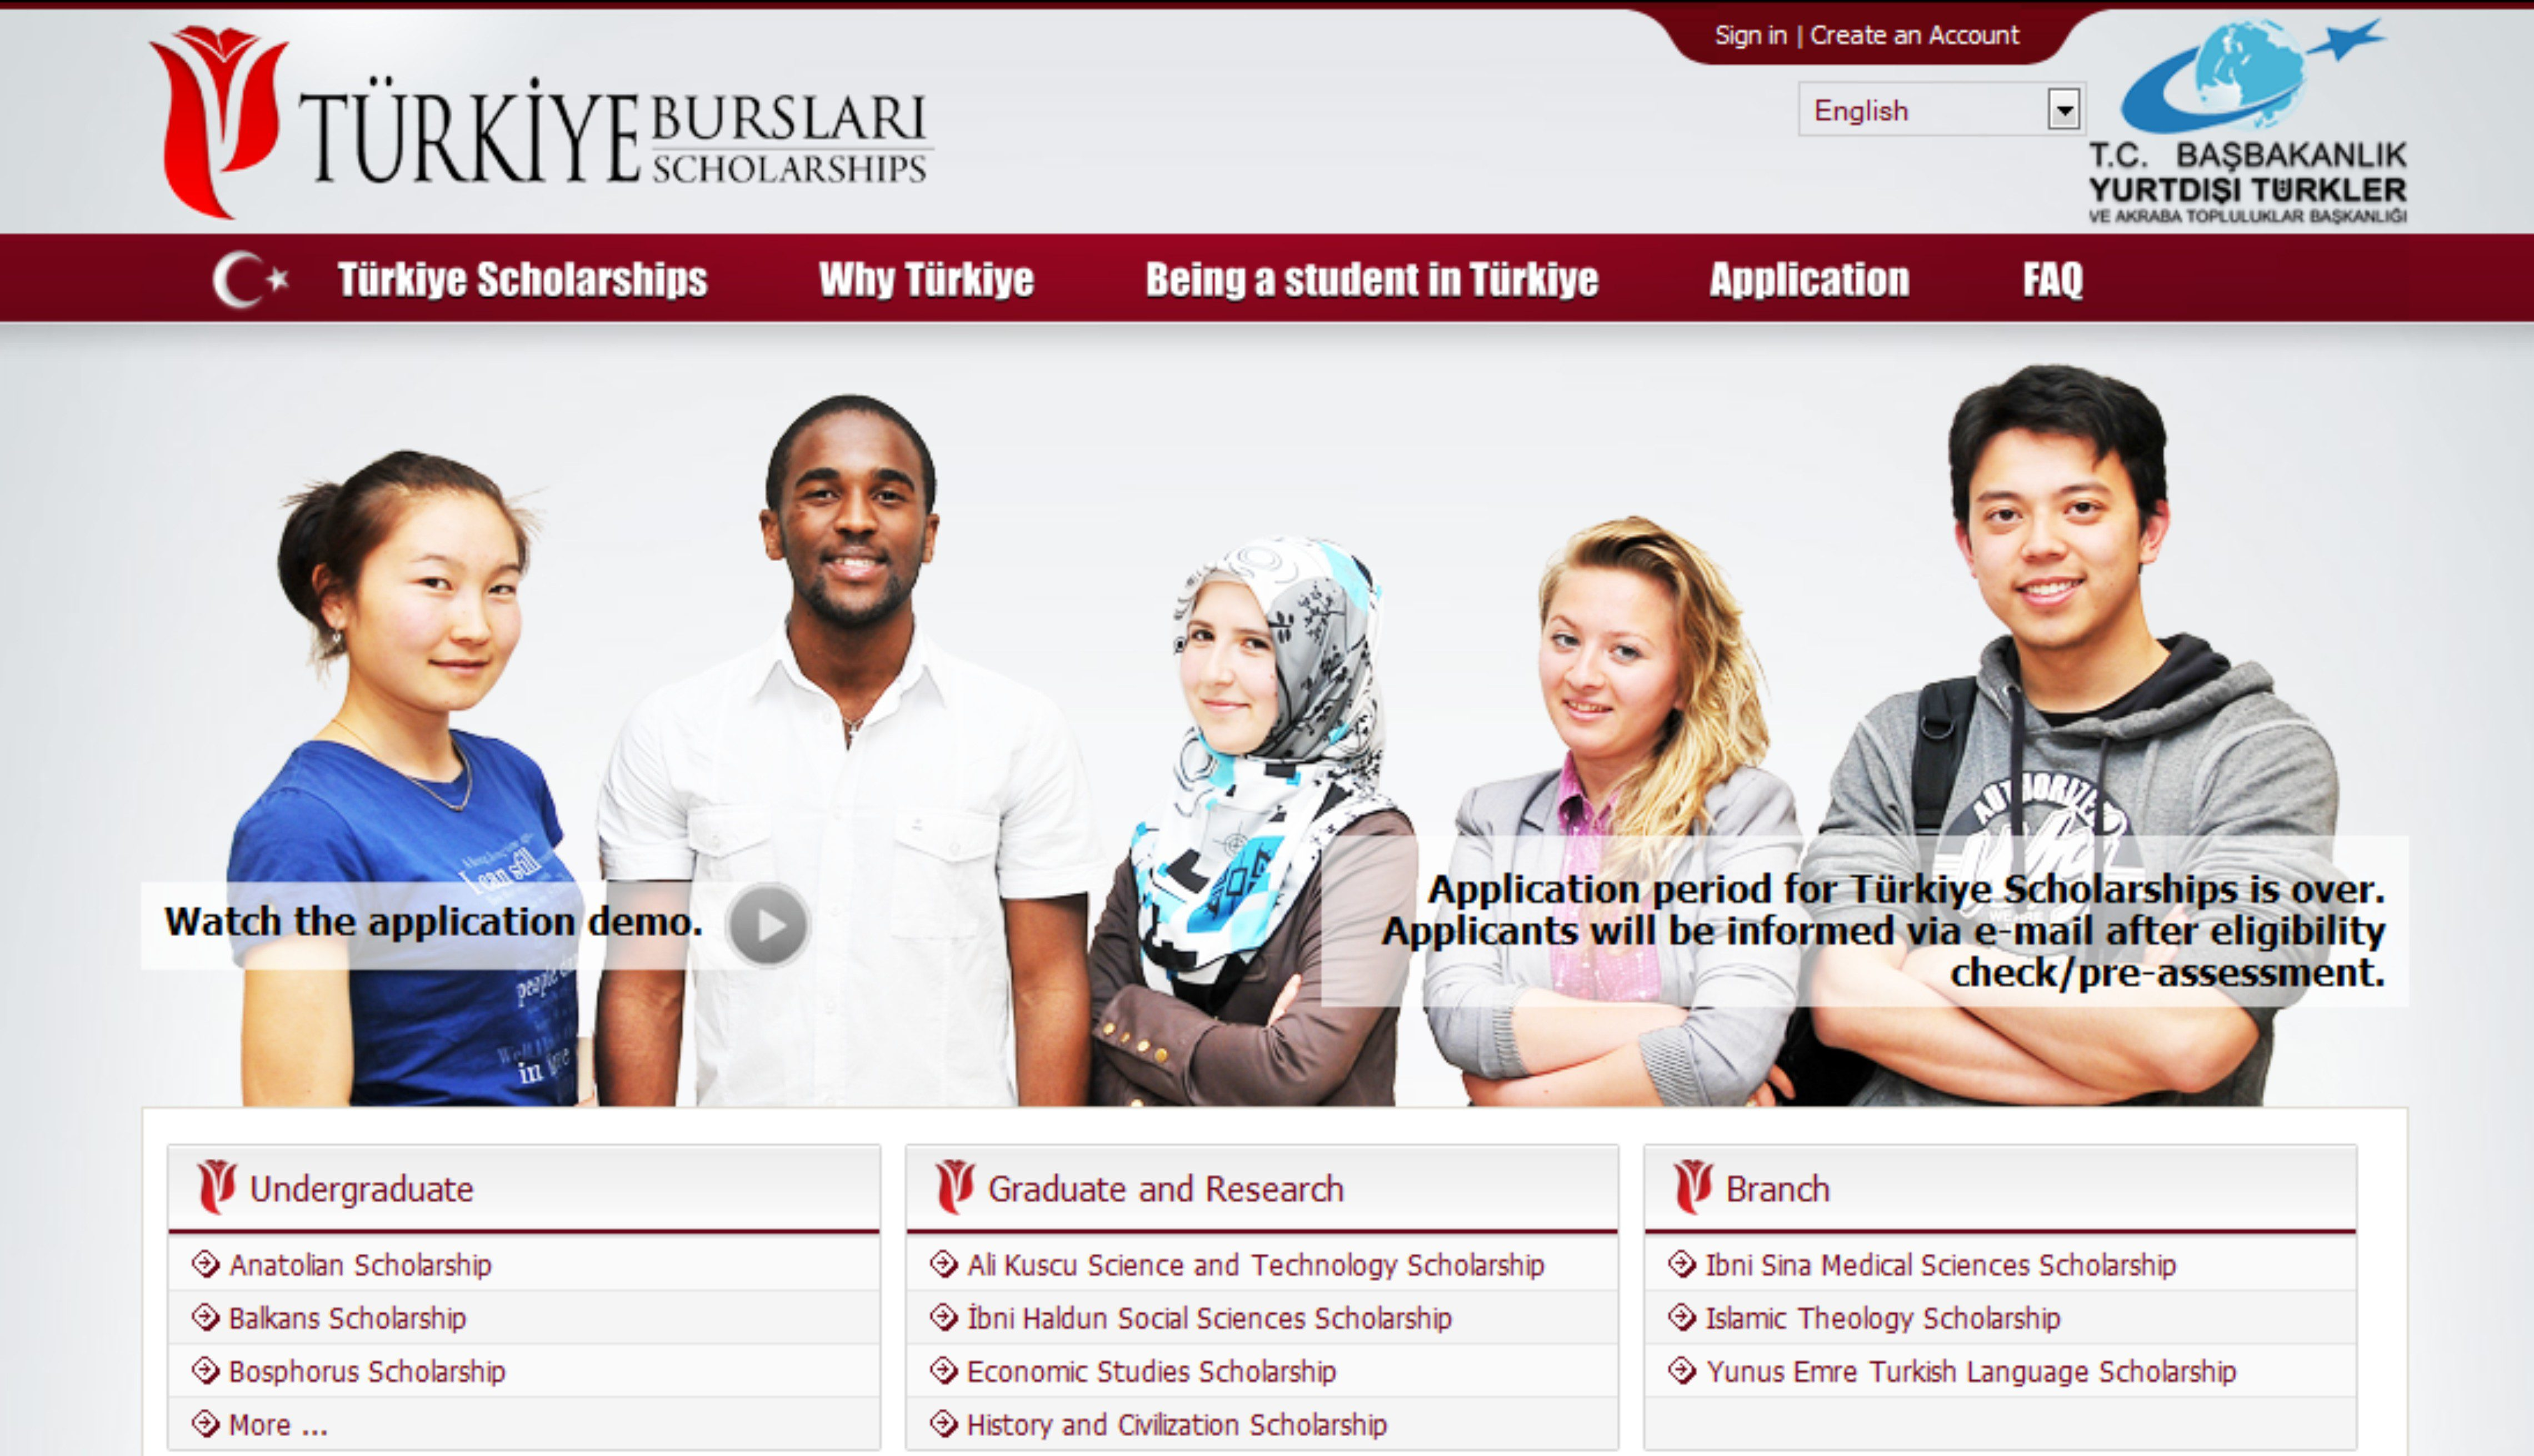 turkiye-burslari-scholarship-program-2013,